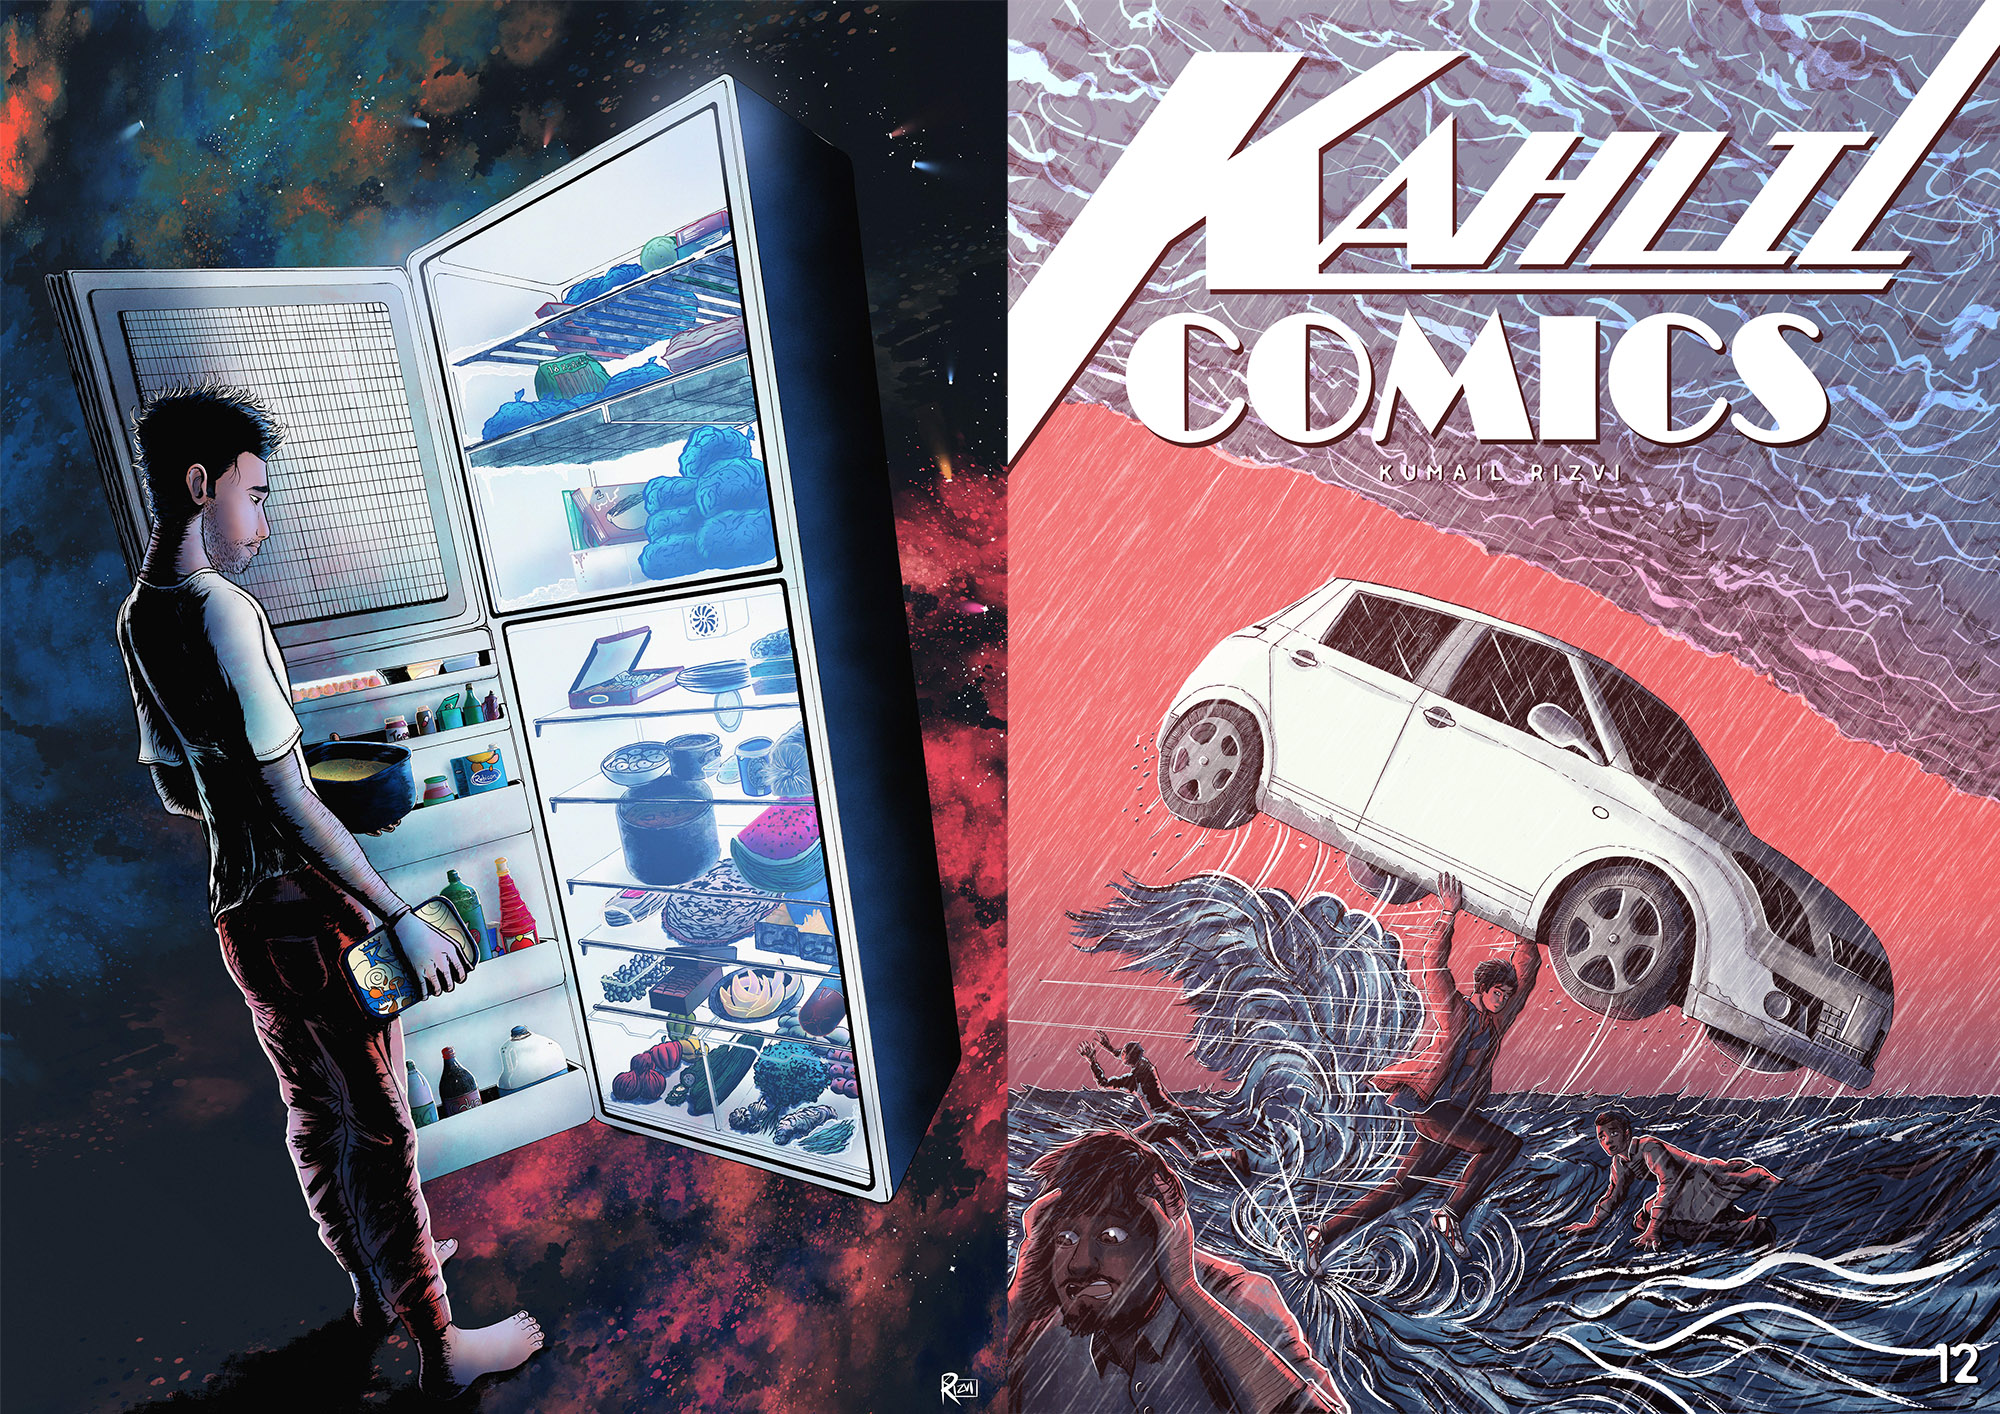 Left, Kumail's piece for BOBBA Exhibition  Right, the cover of Kumail's comic book Kalil